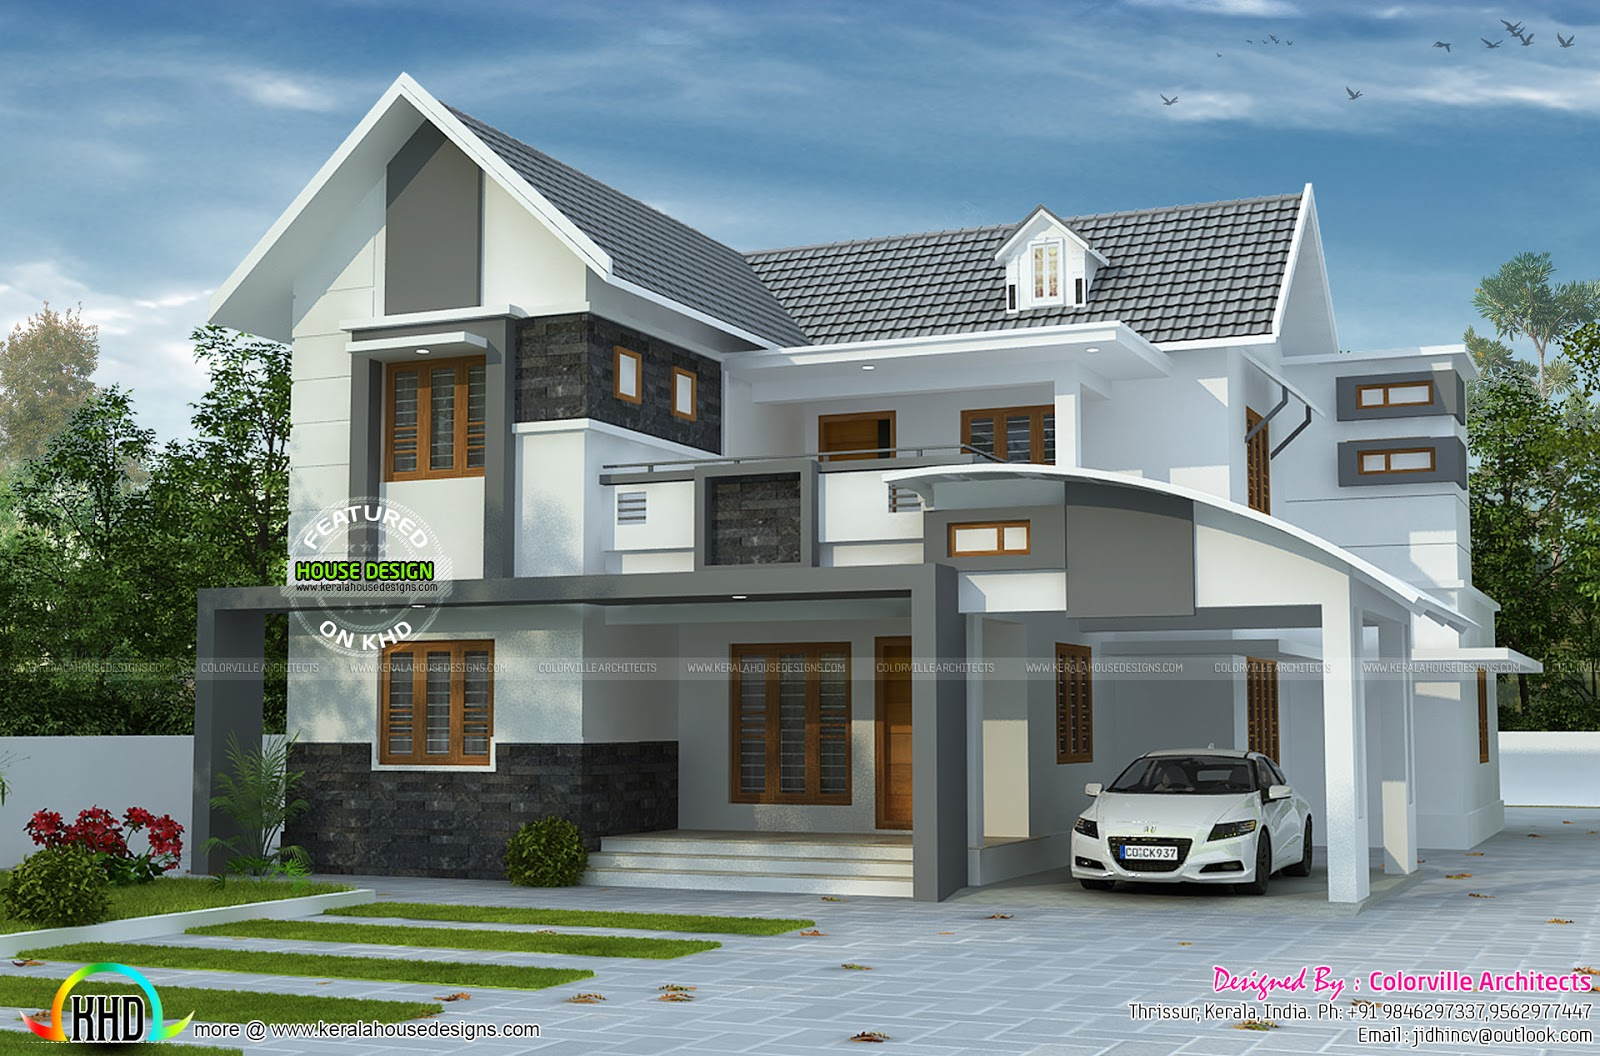 House plan by colorville architects kerala home design for In ground home designs